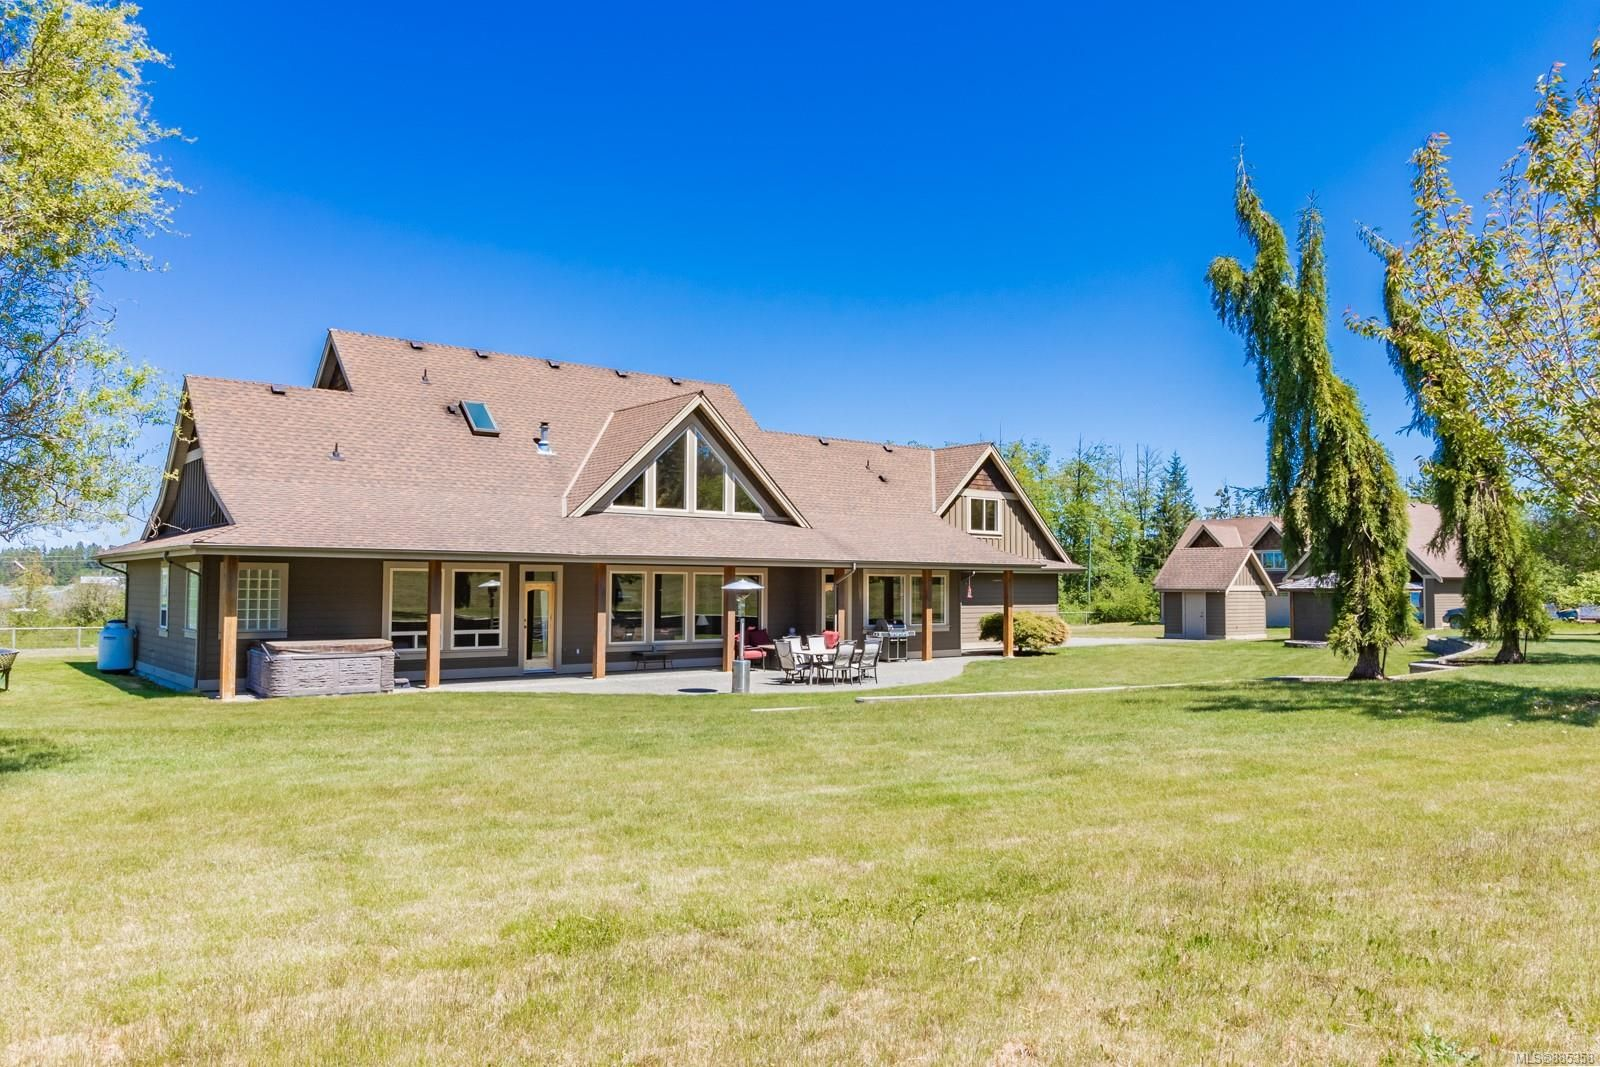 Photo 61: Photos: 2850 Peters Rd in : PQ Qualicum Beach House for sale (Parksville/Qualicum)  : MLS®# 885358